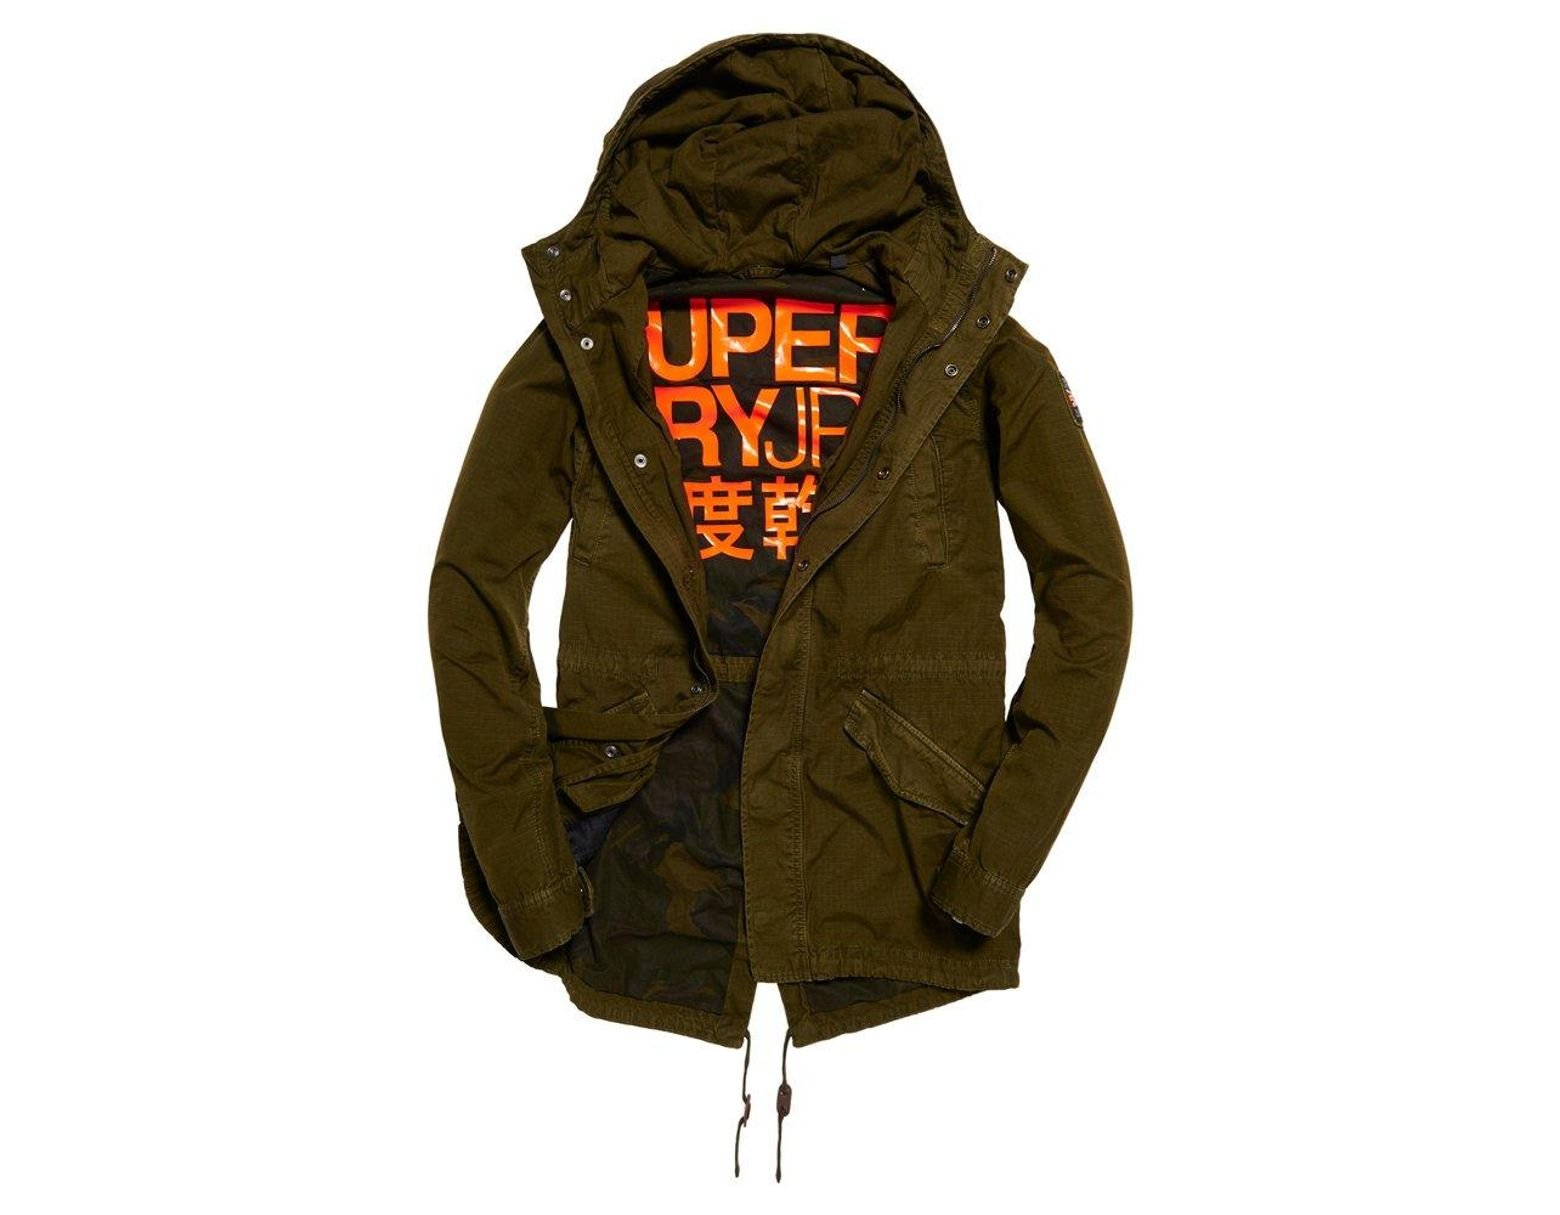 b442577c3eb86 Superdry Rookie Fishtail Parka Jacket in Green for Men - Lyst